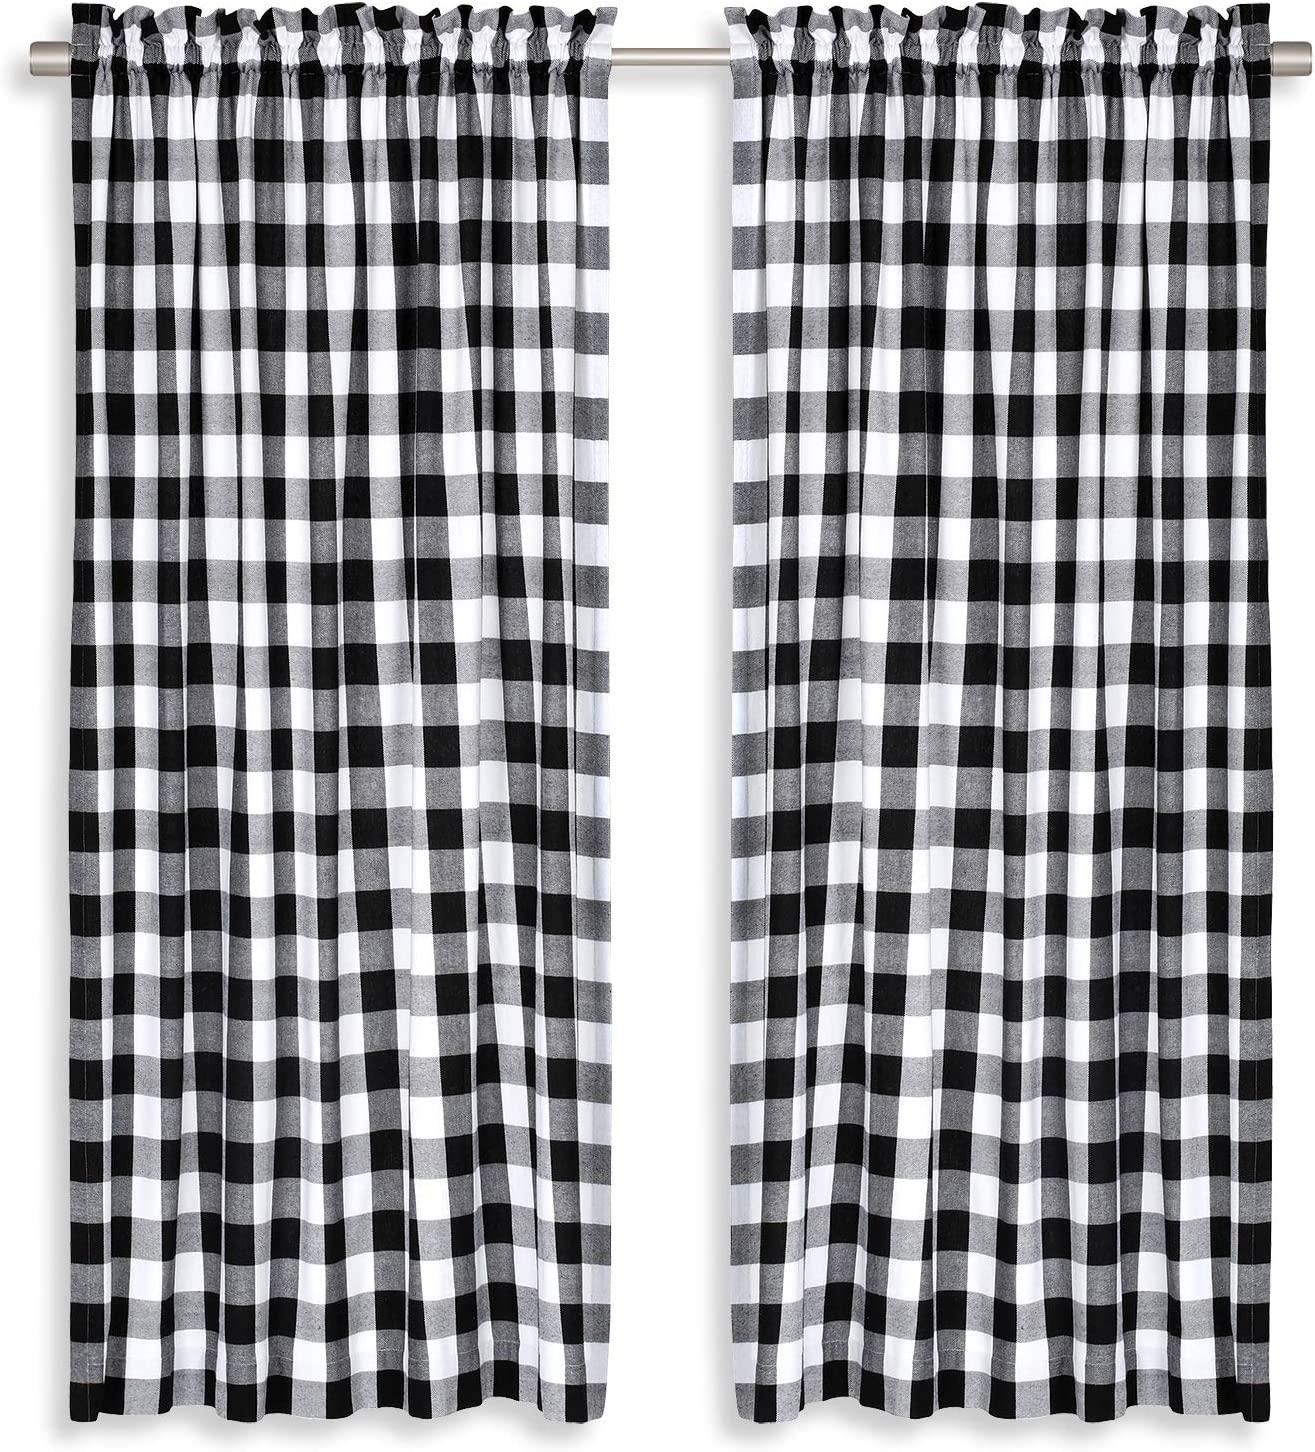 Cackleberry Home Black and White Buffalo Check Woven Fabric Panel Curtains 54 Inches W x 63 Inches L, Set of 2